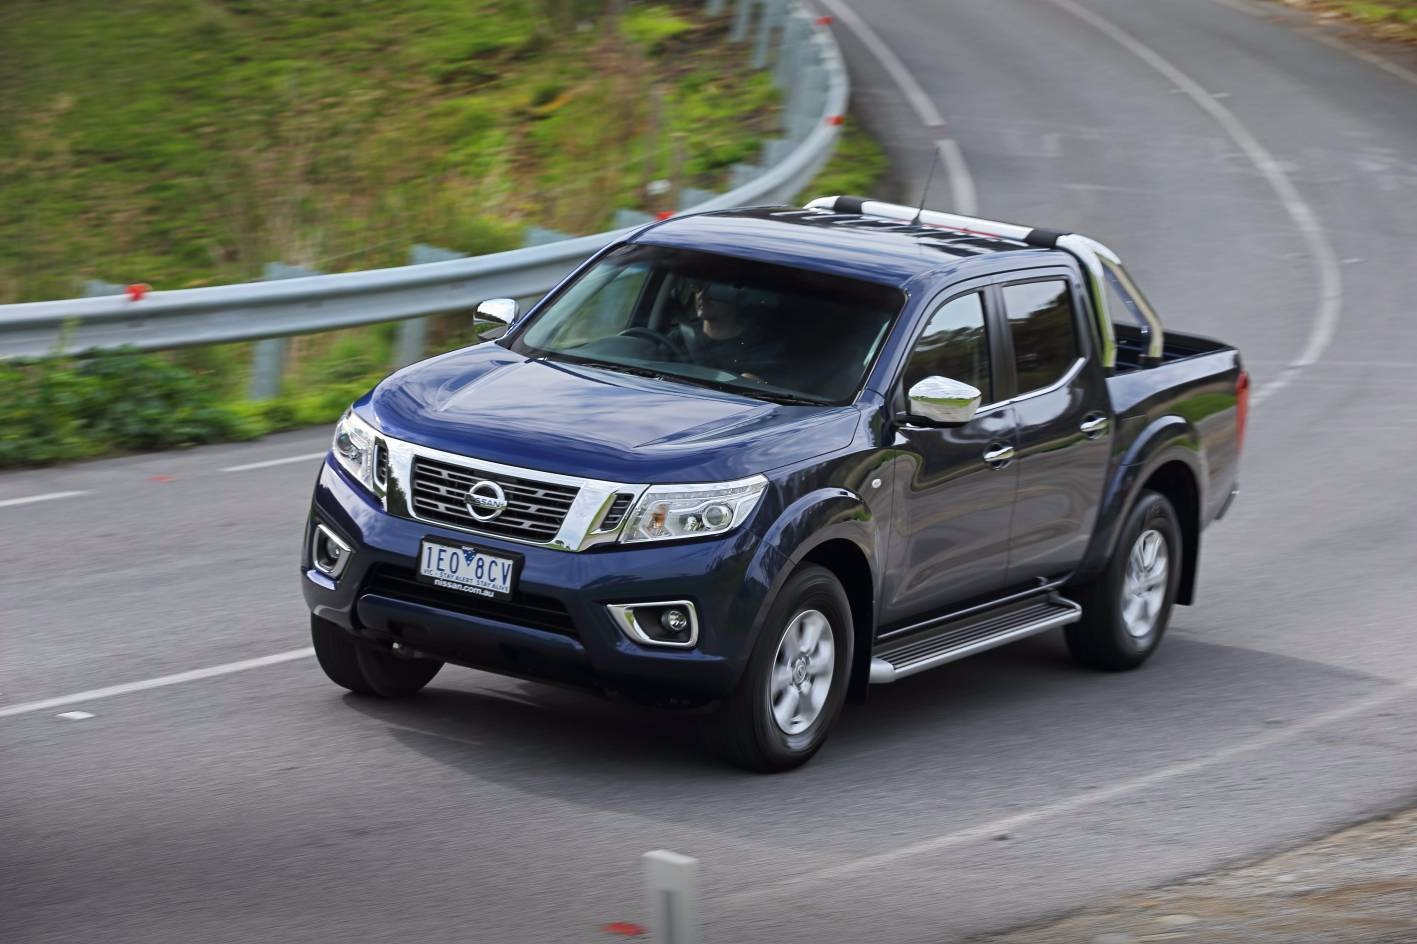 2016 nissan navara st review loaded 4x4. Black Bedroom Furniture Sets. Home Design Ideas